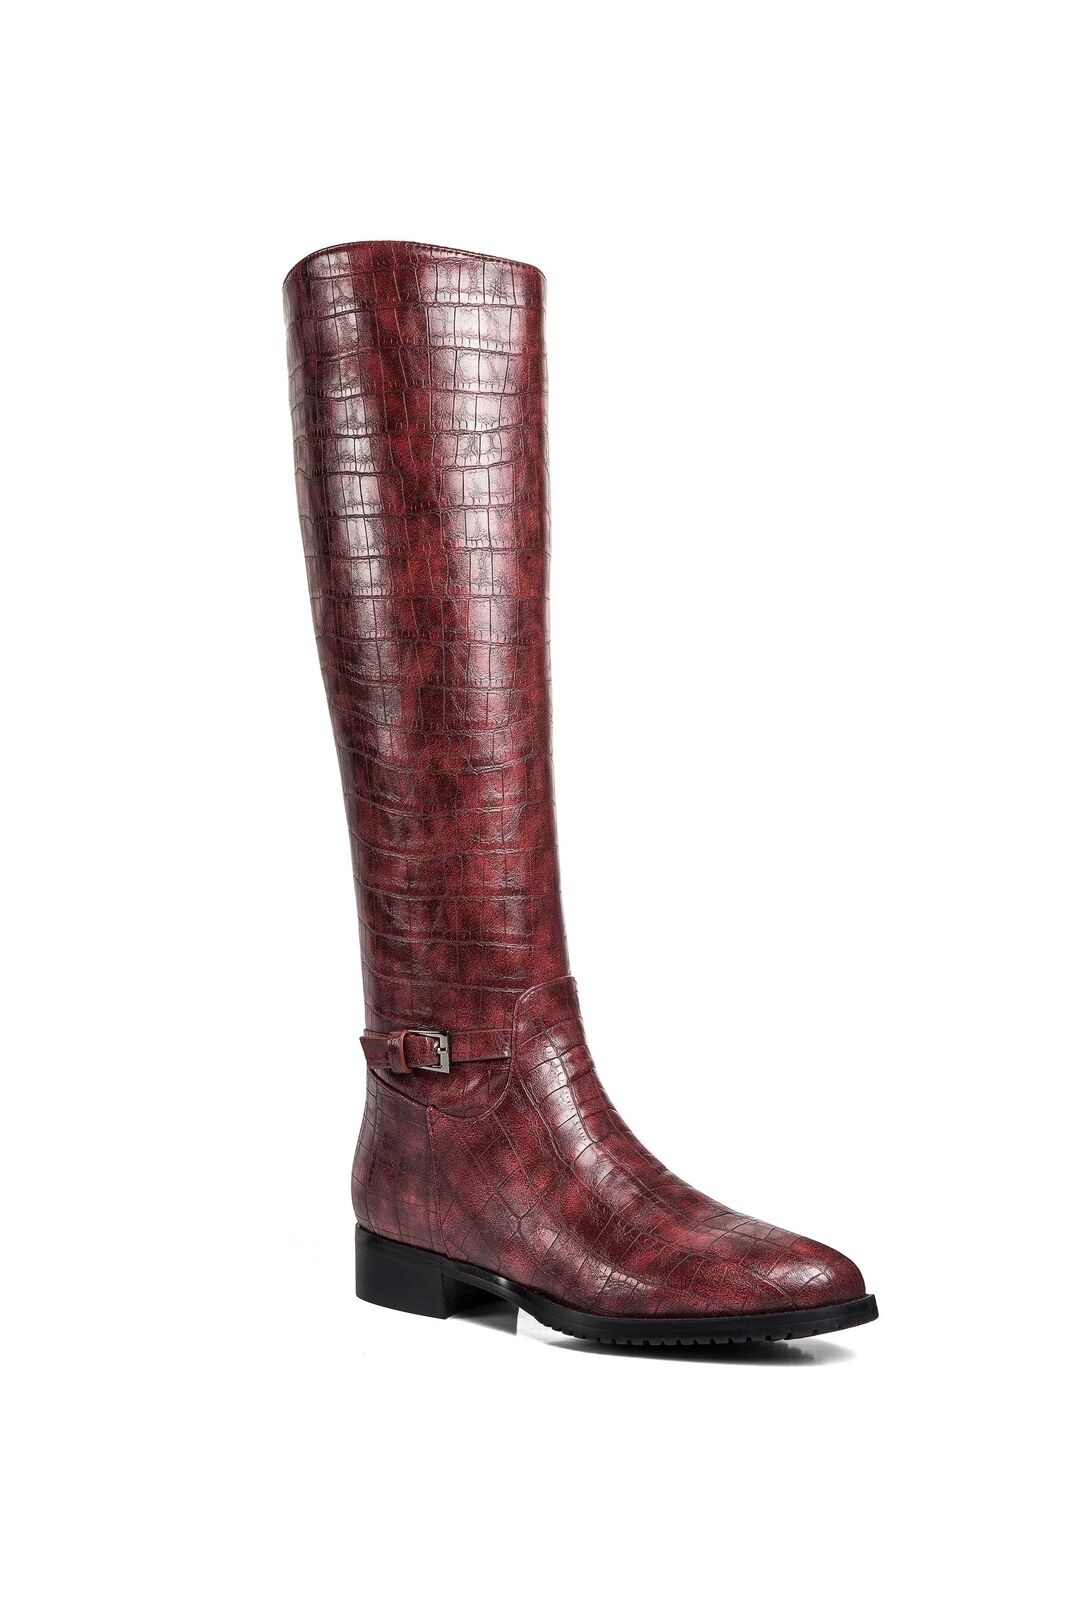 71d1cd1dc8e Weenen' Boots Riding Croc-Print Women's Creek Ann apyqb2b056768 ...